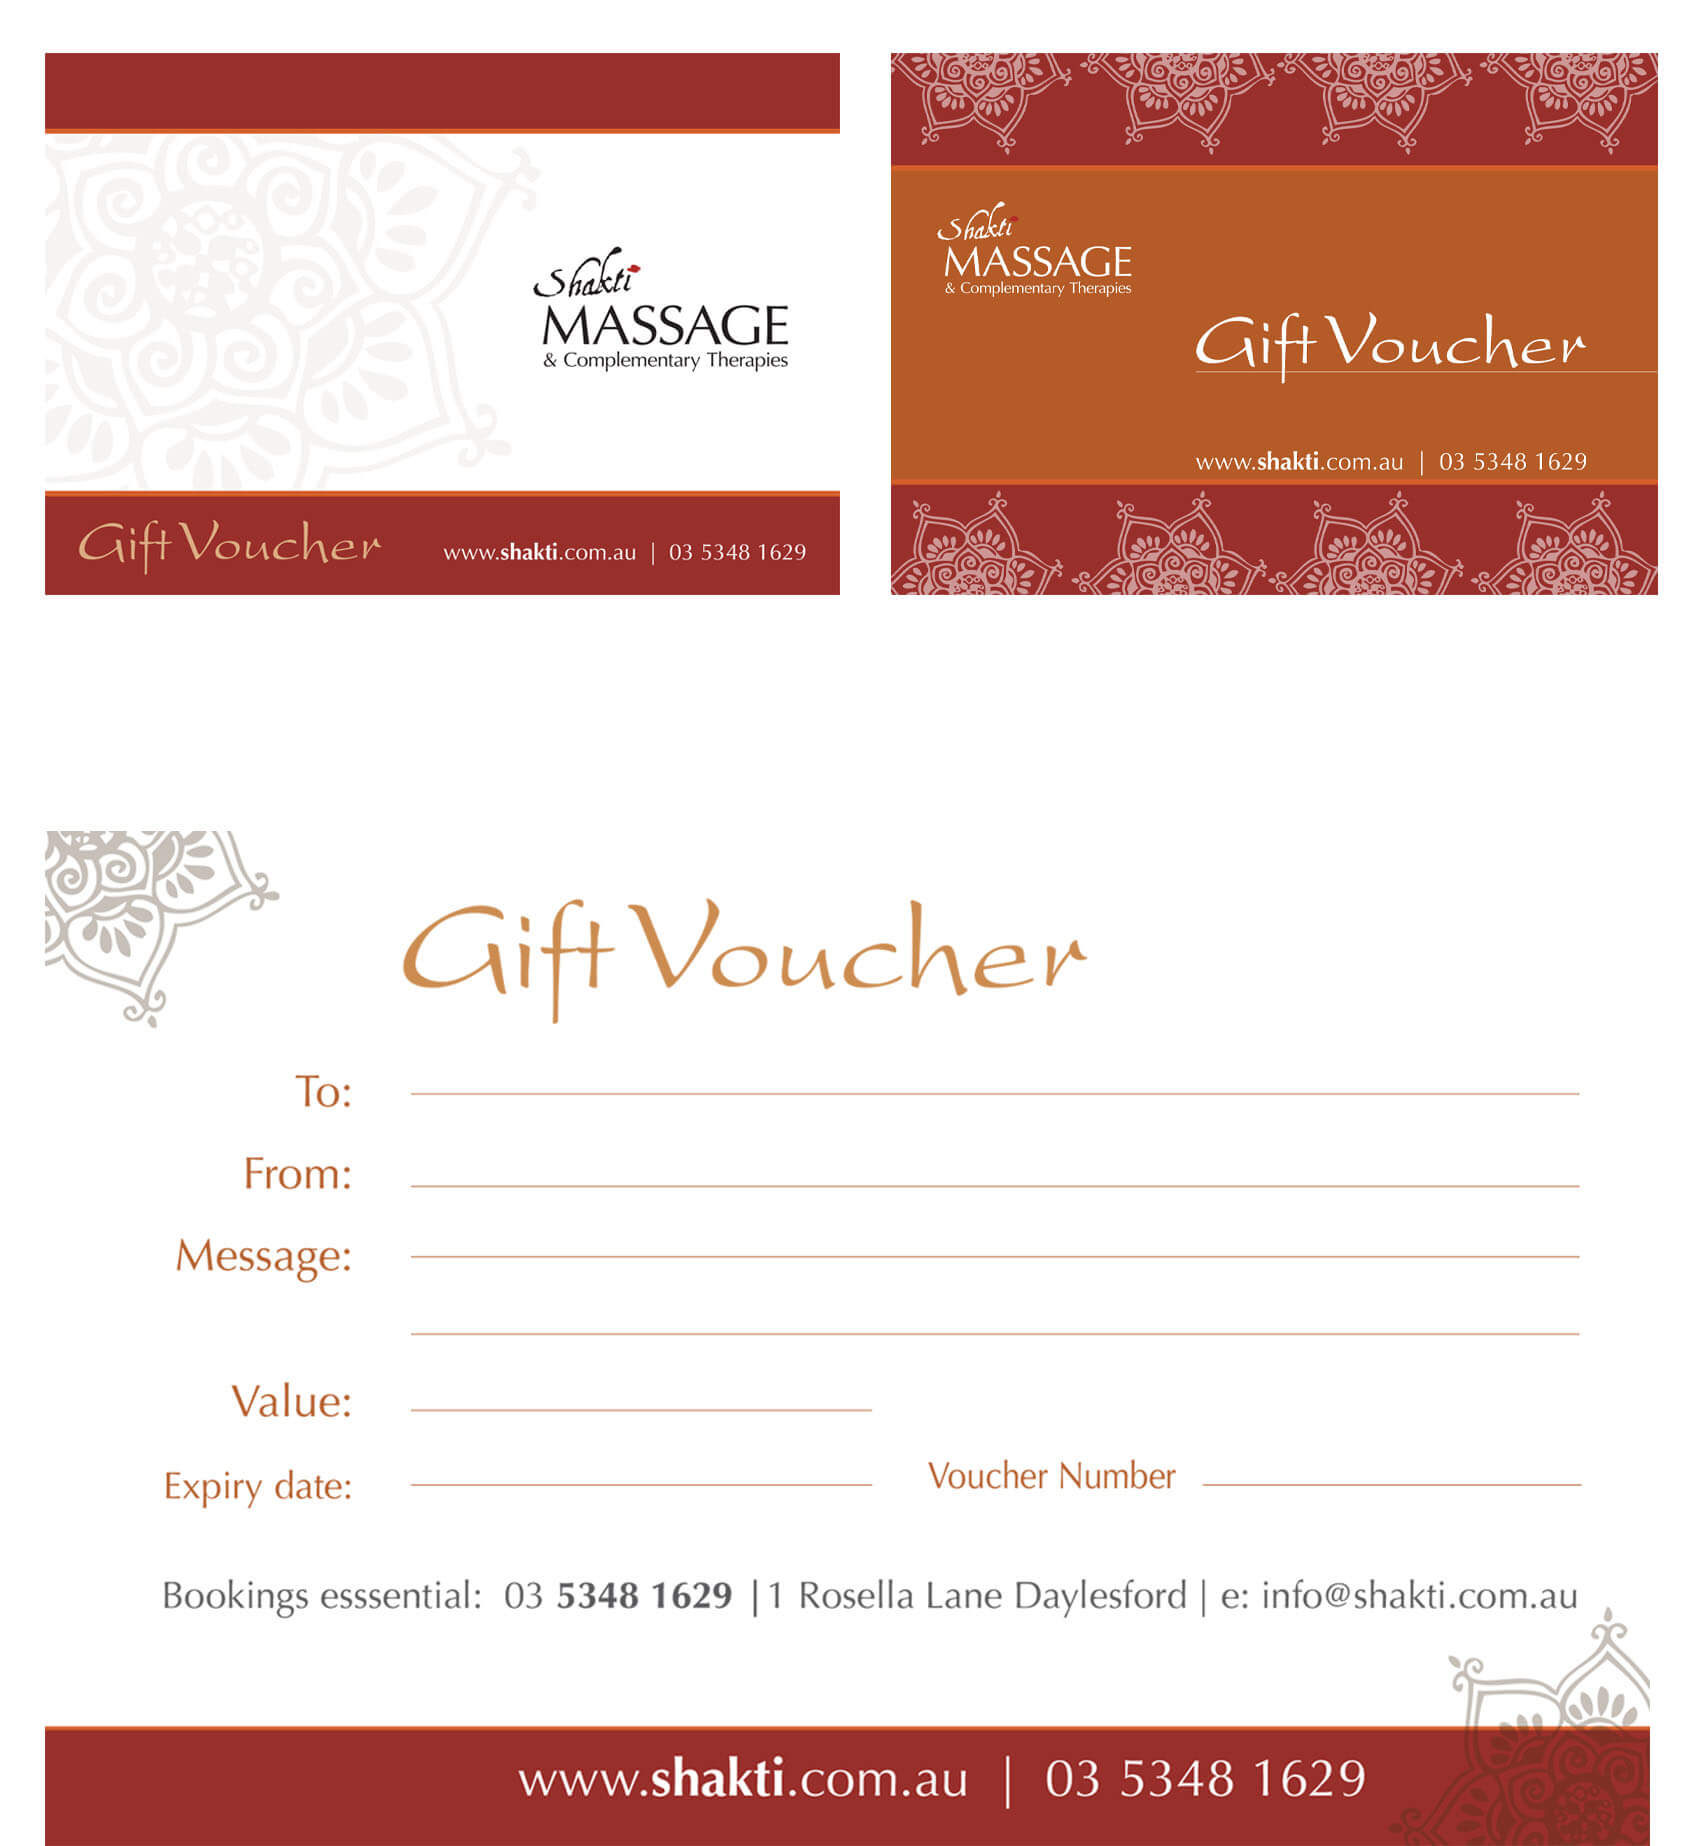 Gift Vouchers from Shakti Massage - Daylesford